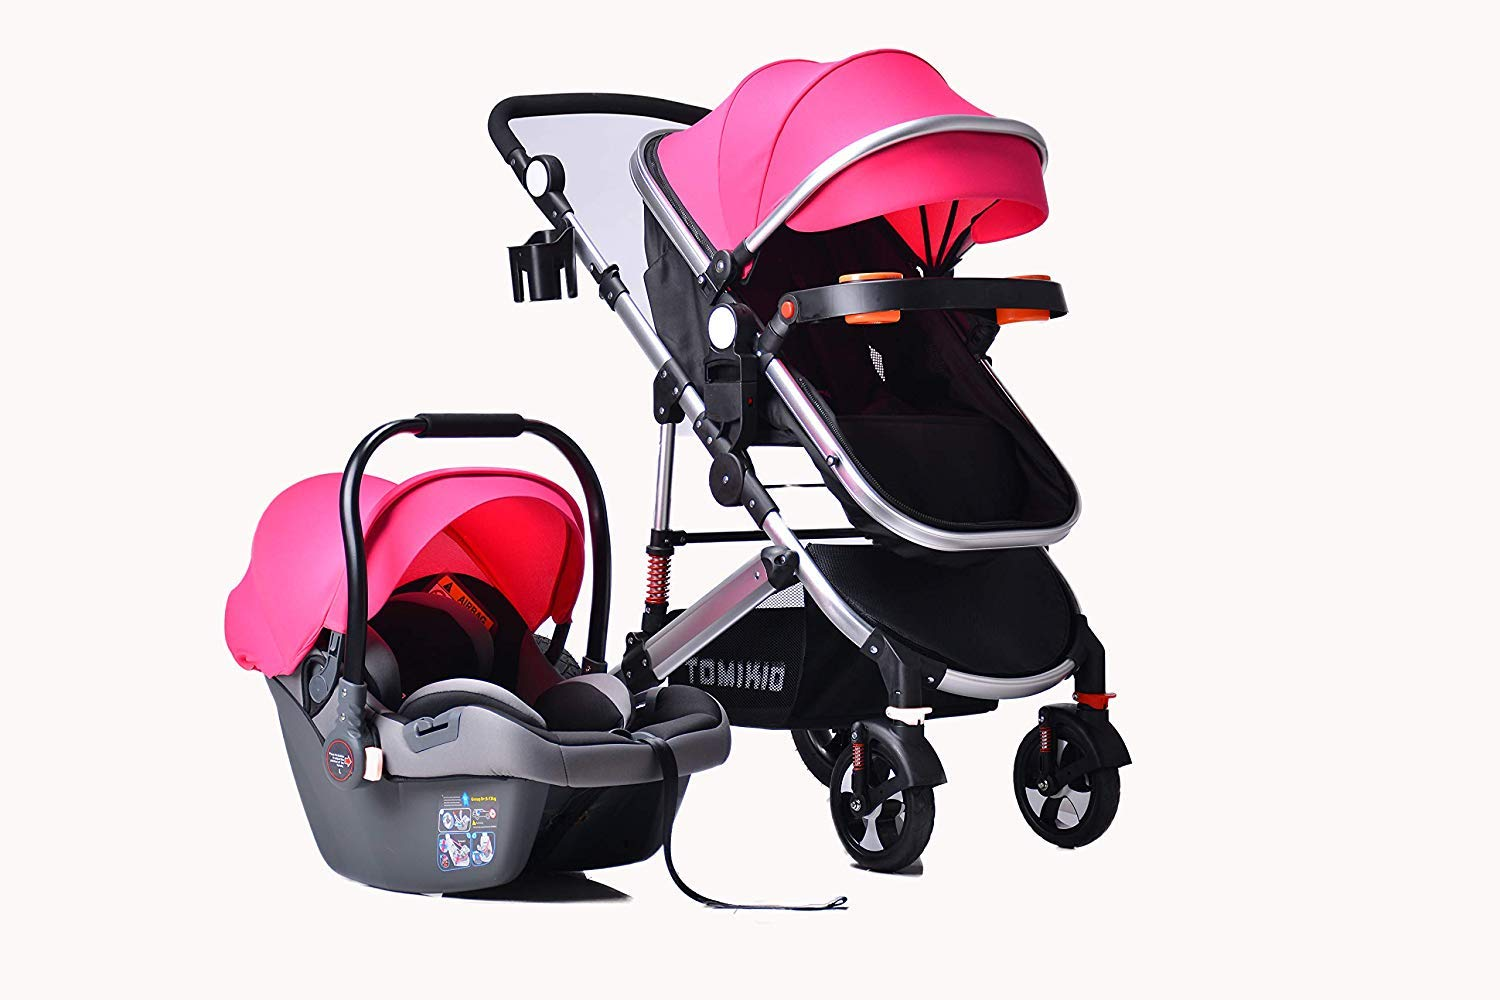 3 in 1 Combi Stroller Buggy Baby Child Pushchair Reverse or Forward Facing Rain Cover Mosquito Net Bottle Holder Foldable with FootMuff Rose Red (Pink) with Silver Frame Tomi